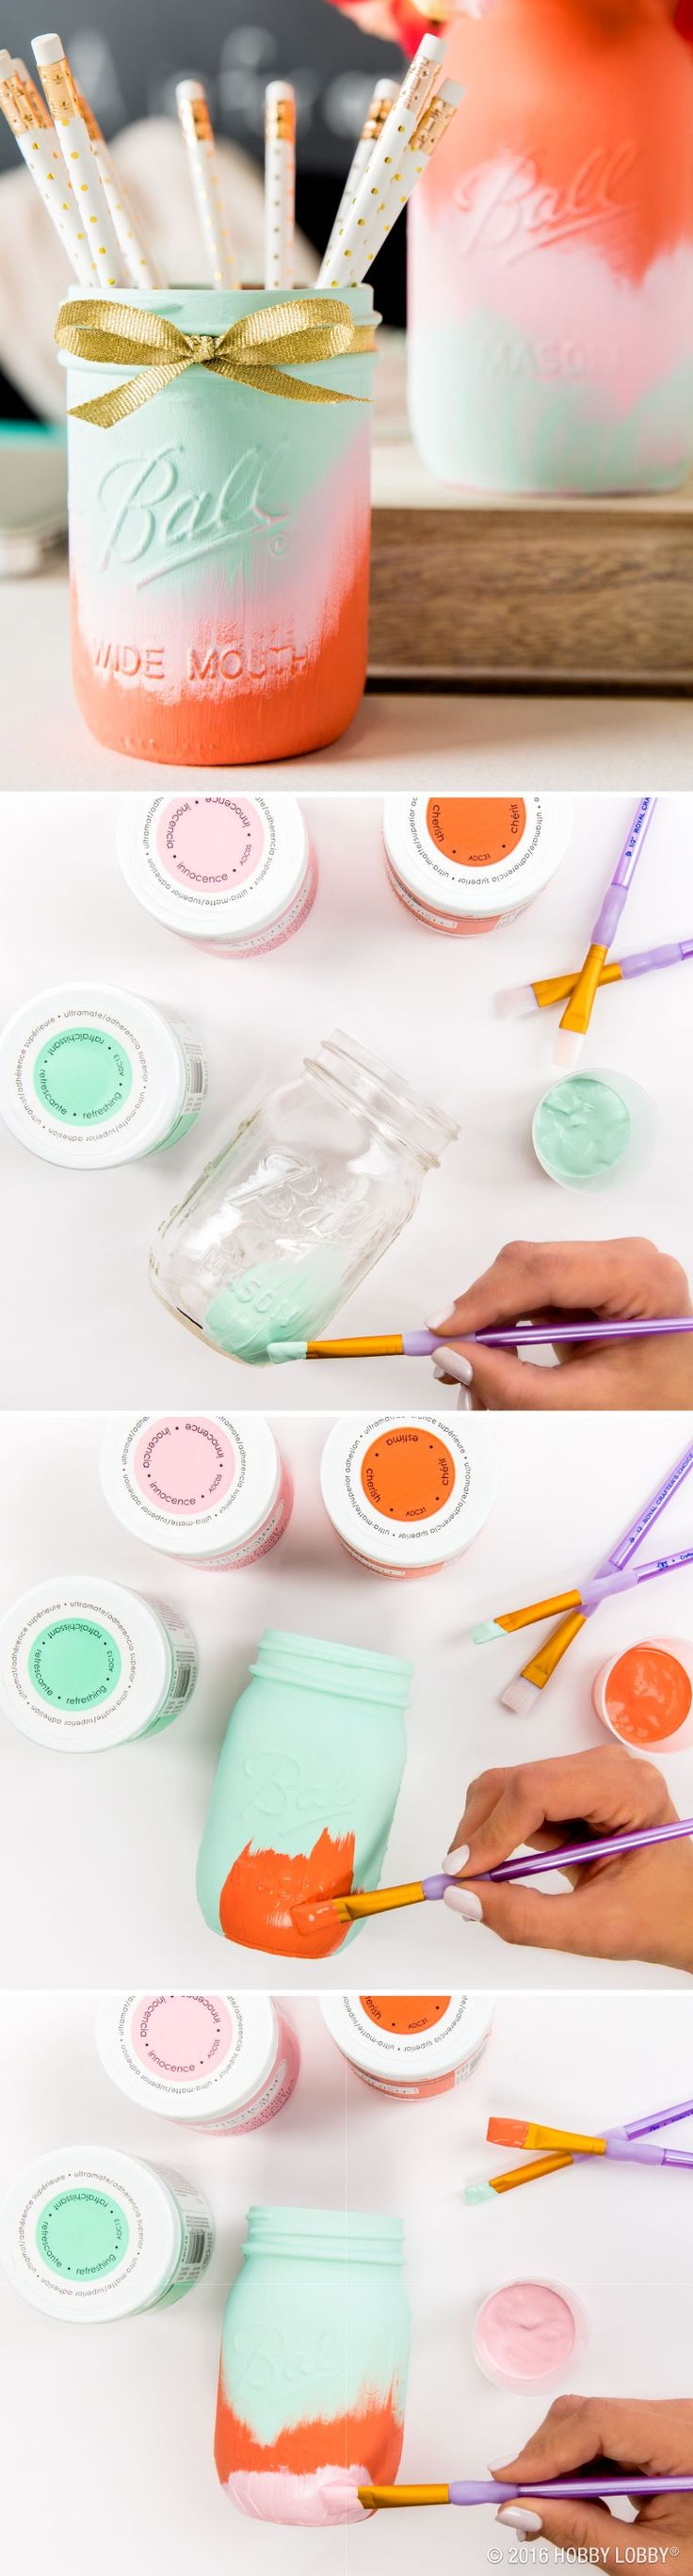 This DIY mason jar is the perfect storage solution or Teacher's gift! To DIY: 1) Paint a mason jar one solid color and let dry completely. 2) Paint on a second color, starting from the bottom, going about 2/3 of the way up the jar. Let dry completely. 3)